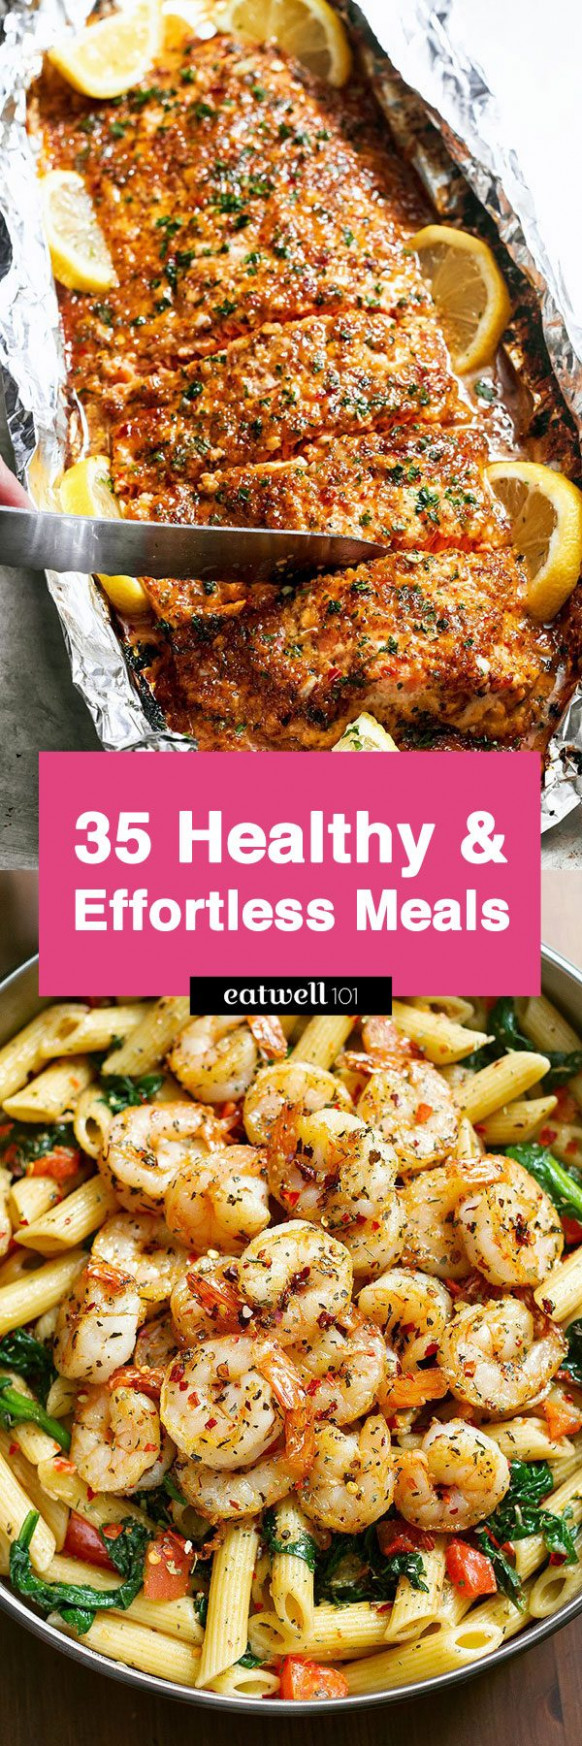 Easy Healthy Dinner Ideas: 13 Low Effort and Healthy Dinner ..